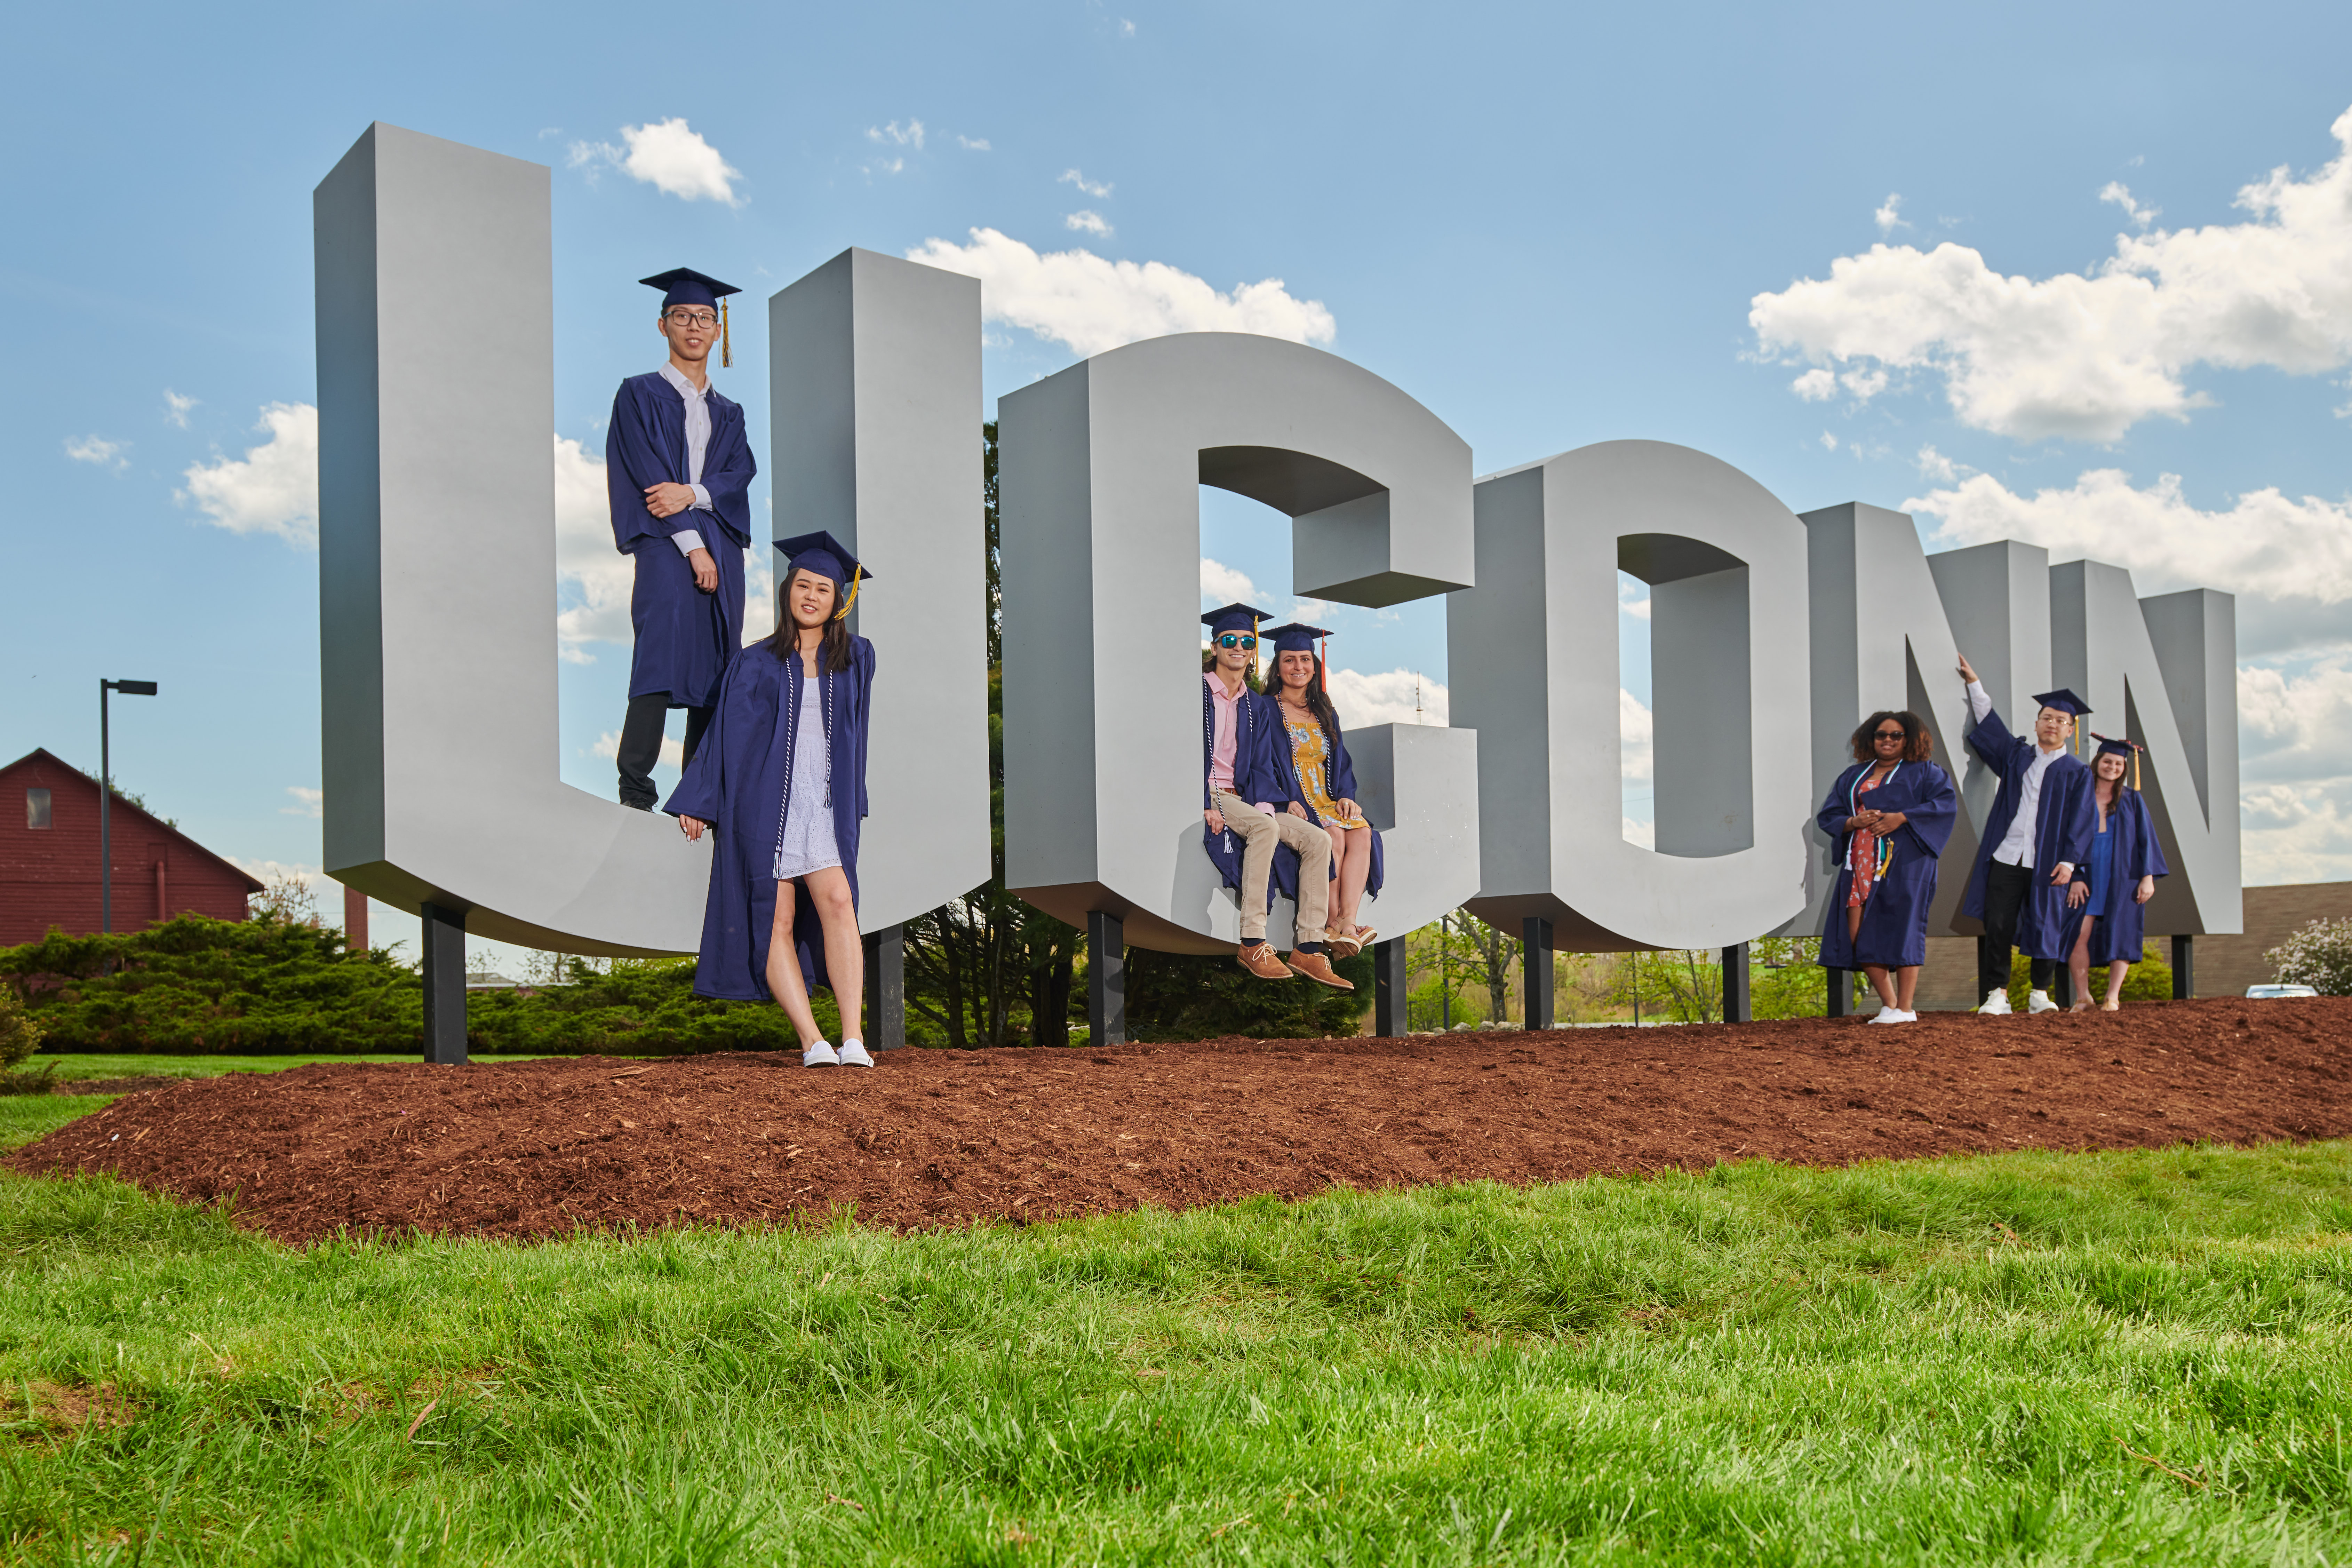 Soon to be graduates pose with the new UConn sign along Route 195. From left are Kailin Lu '19 (CLAS), Kai Lu '19 (CLAS), Harun Malik '19 (CLAS), Carley Corbo '19 (ENG), Sidayah Dawson '19 (CLAS), Zhenhao Zhang '19 (CLAS), and Debra Peel '19 (CAHNR). (Peter Morenus/UConn Photo)